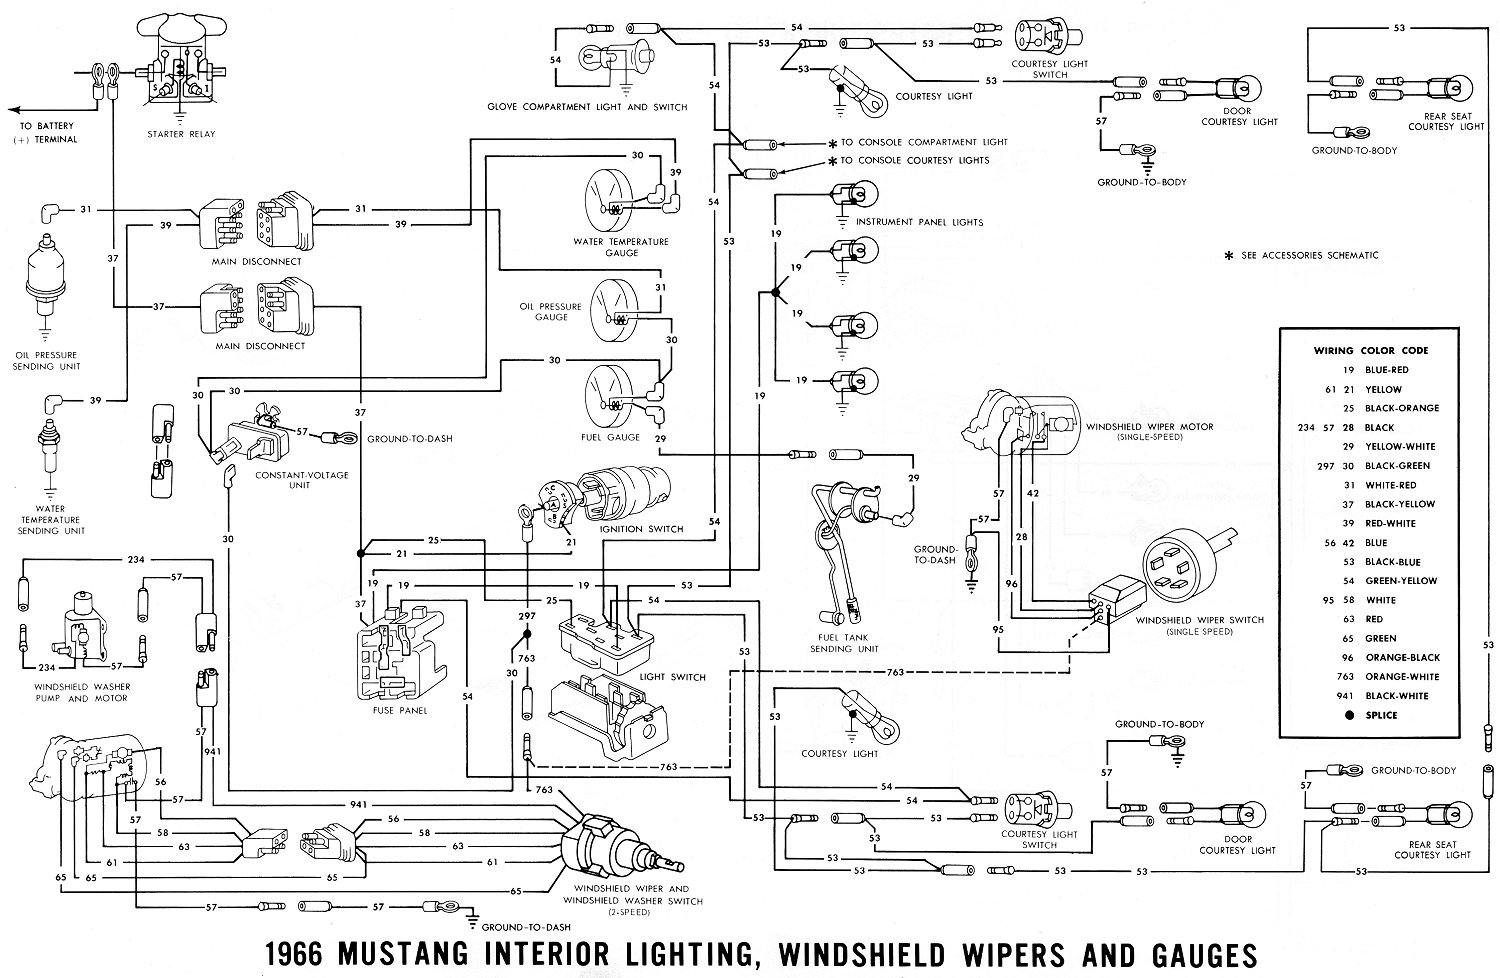 1965 mustang fuse box wiring diagram simple wiring diagram schema1965 mustang fuse block diagram wiring diagrams 1965 ford mustang wiring diagram 1965 mustang fuse box wiring diagram